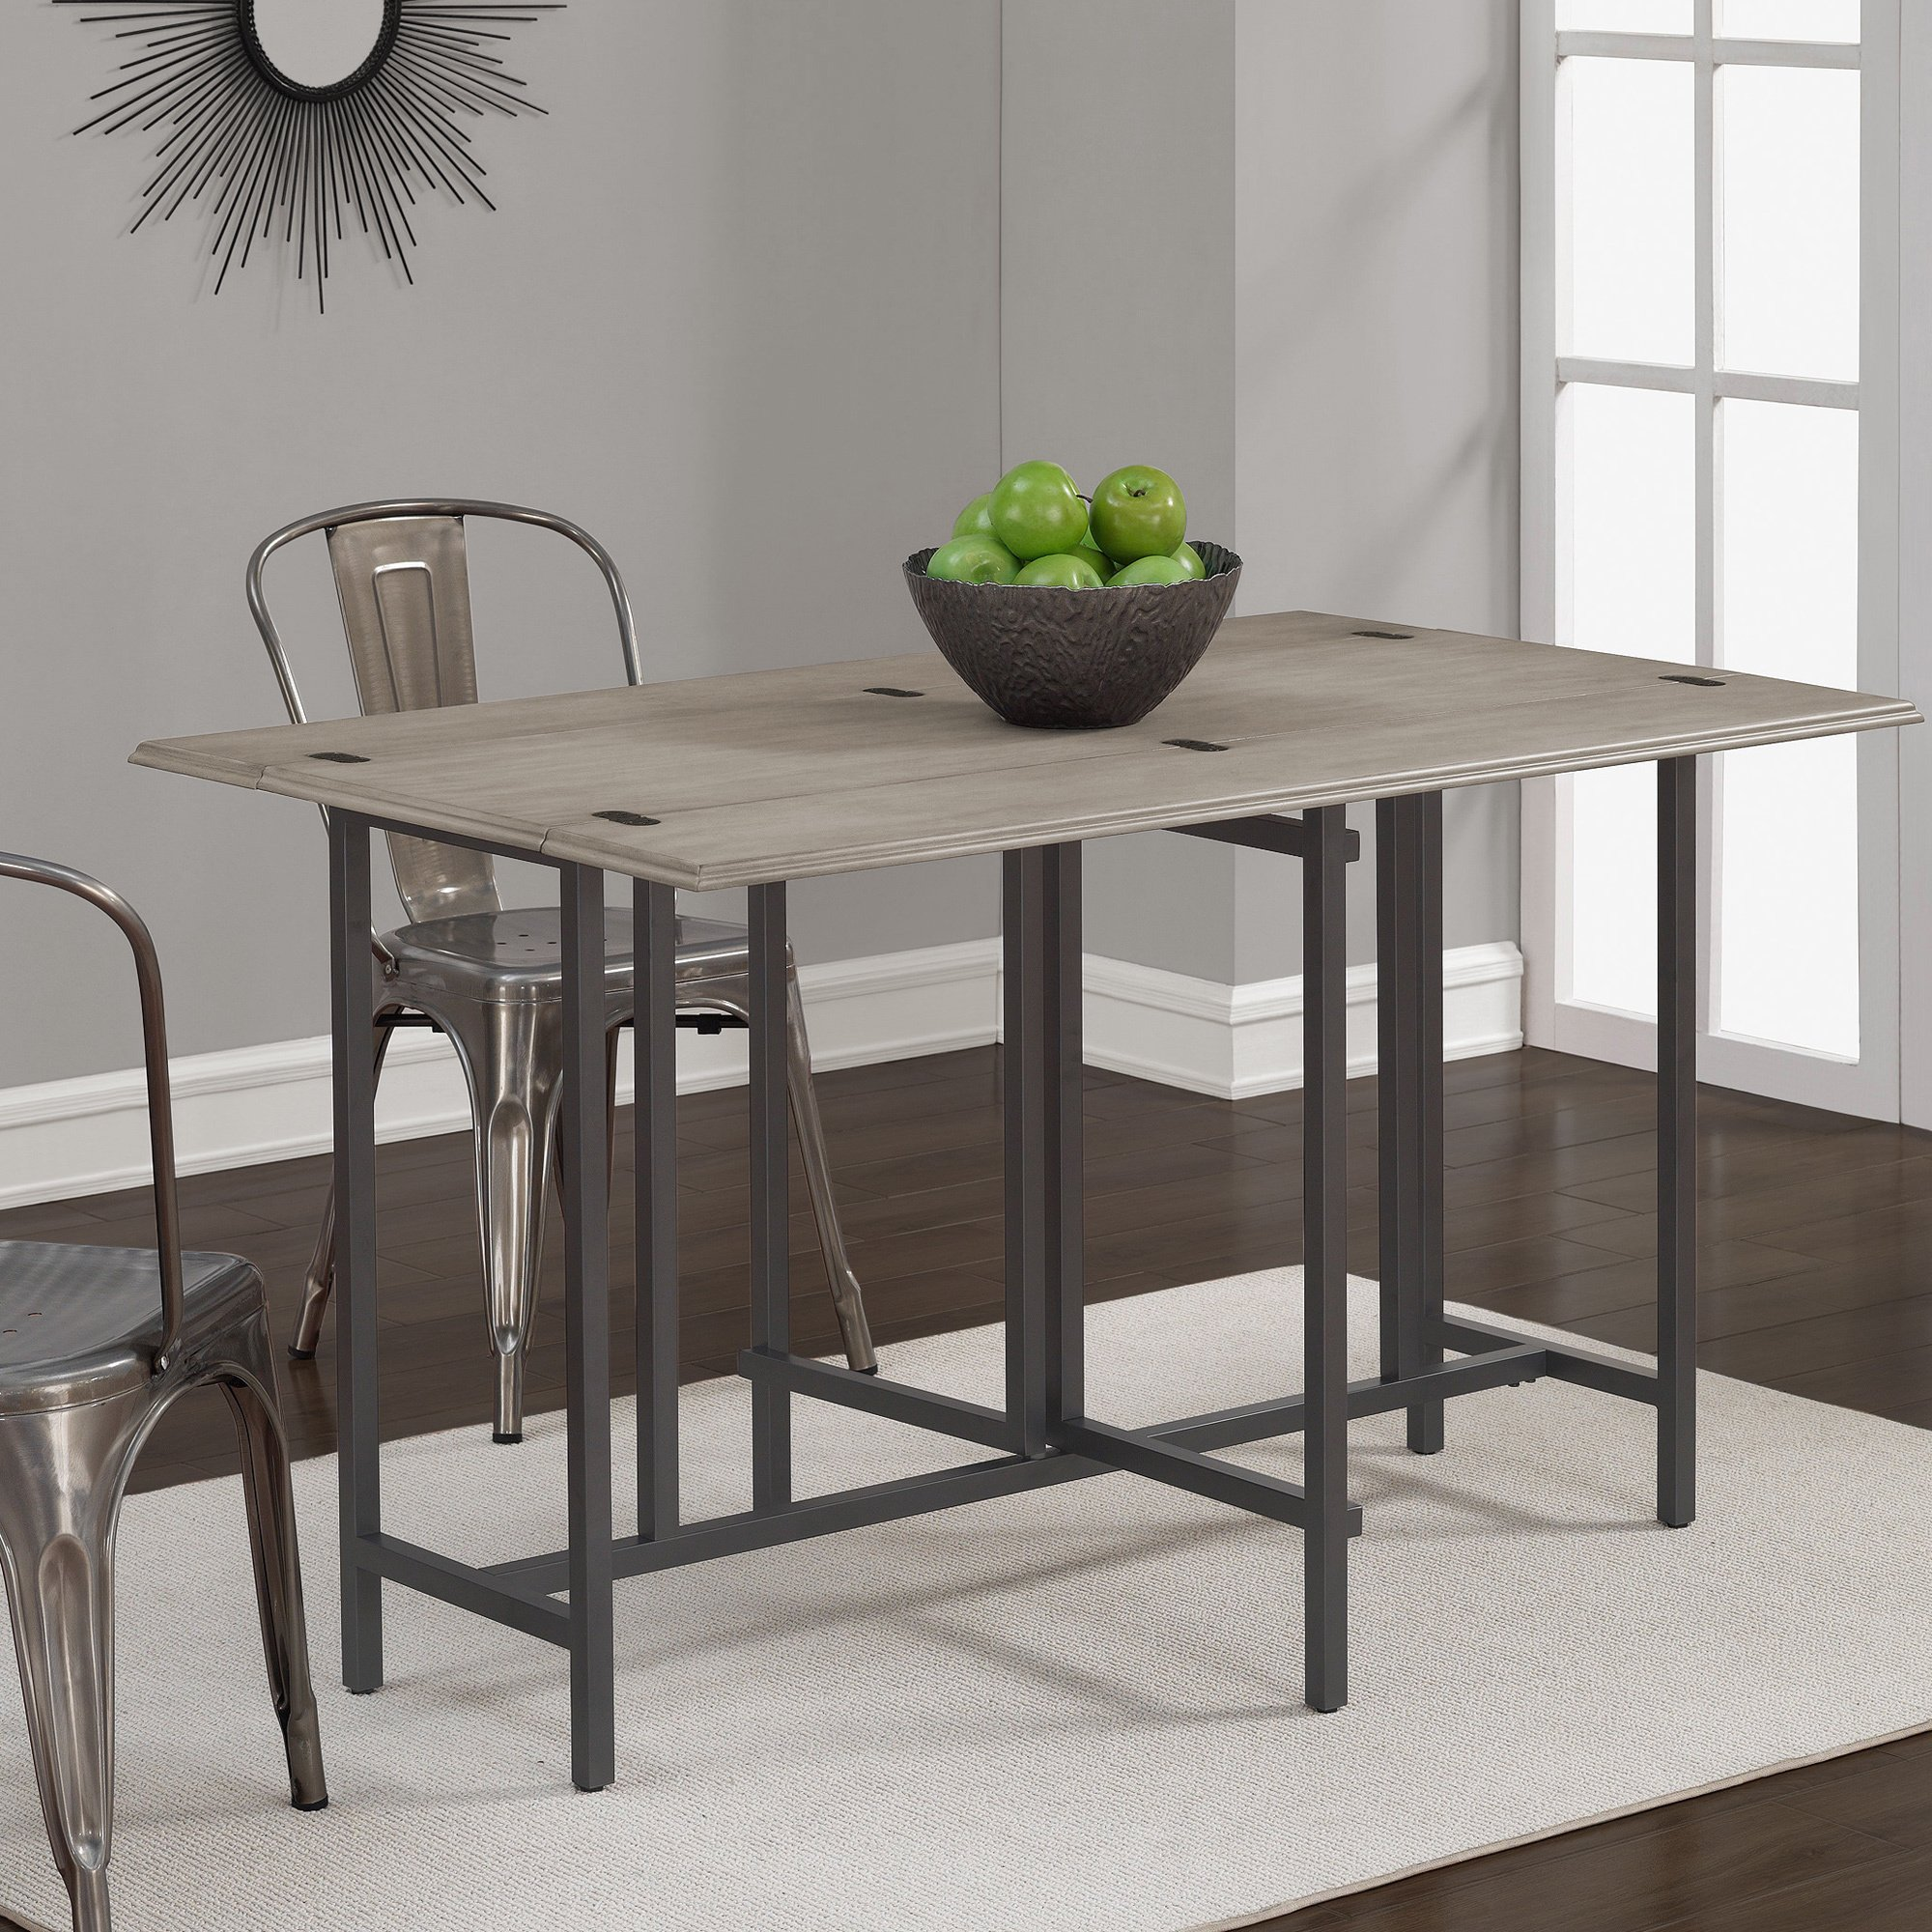 Convertible Dining Table Wood Contemporary Expandable Home Console Kitchen Table by I Love Living (Image #3)